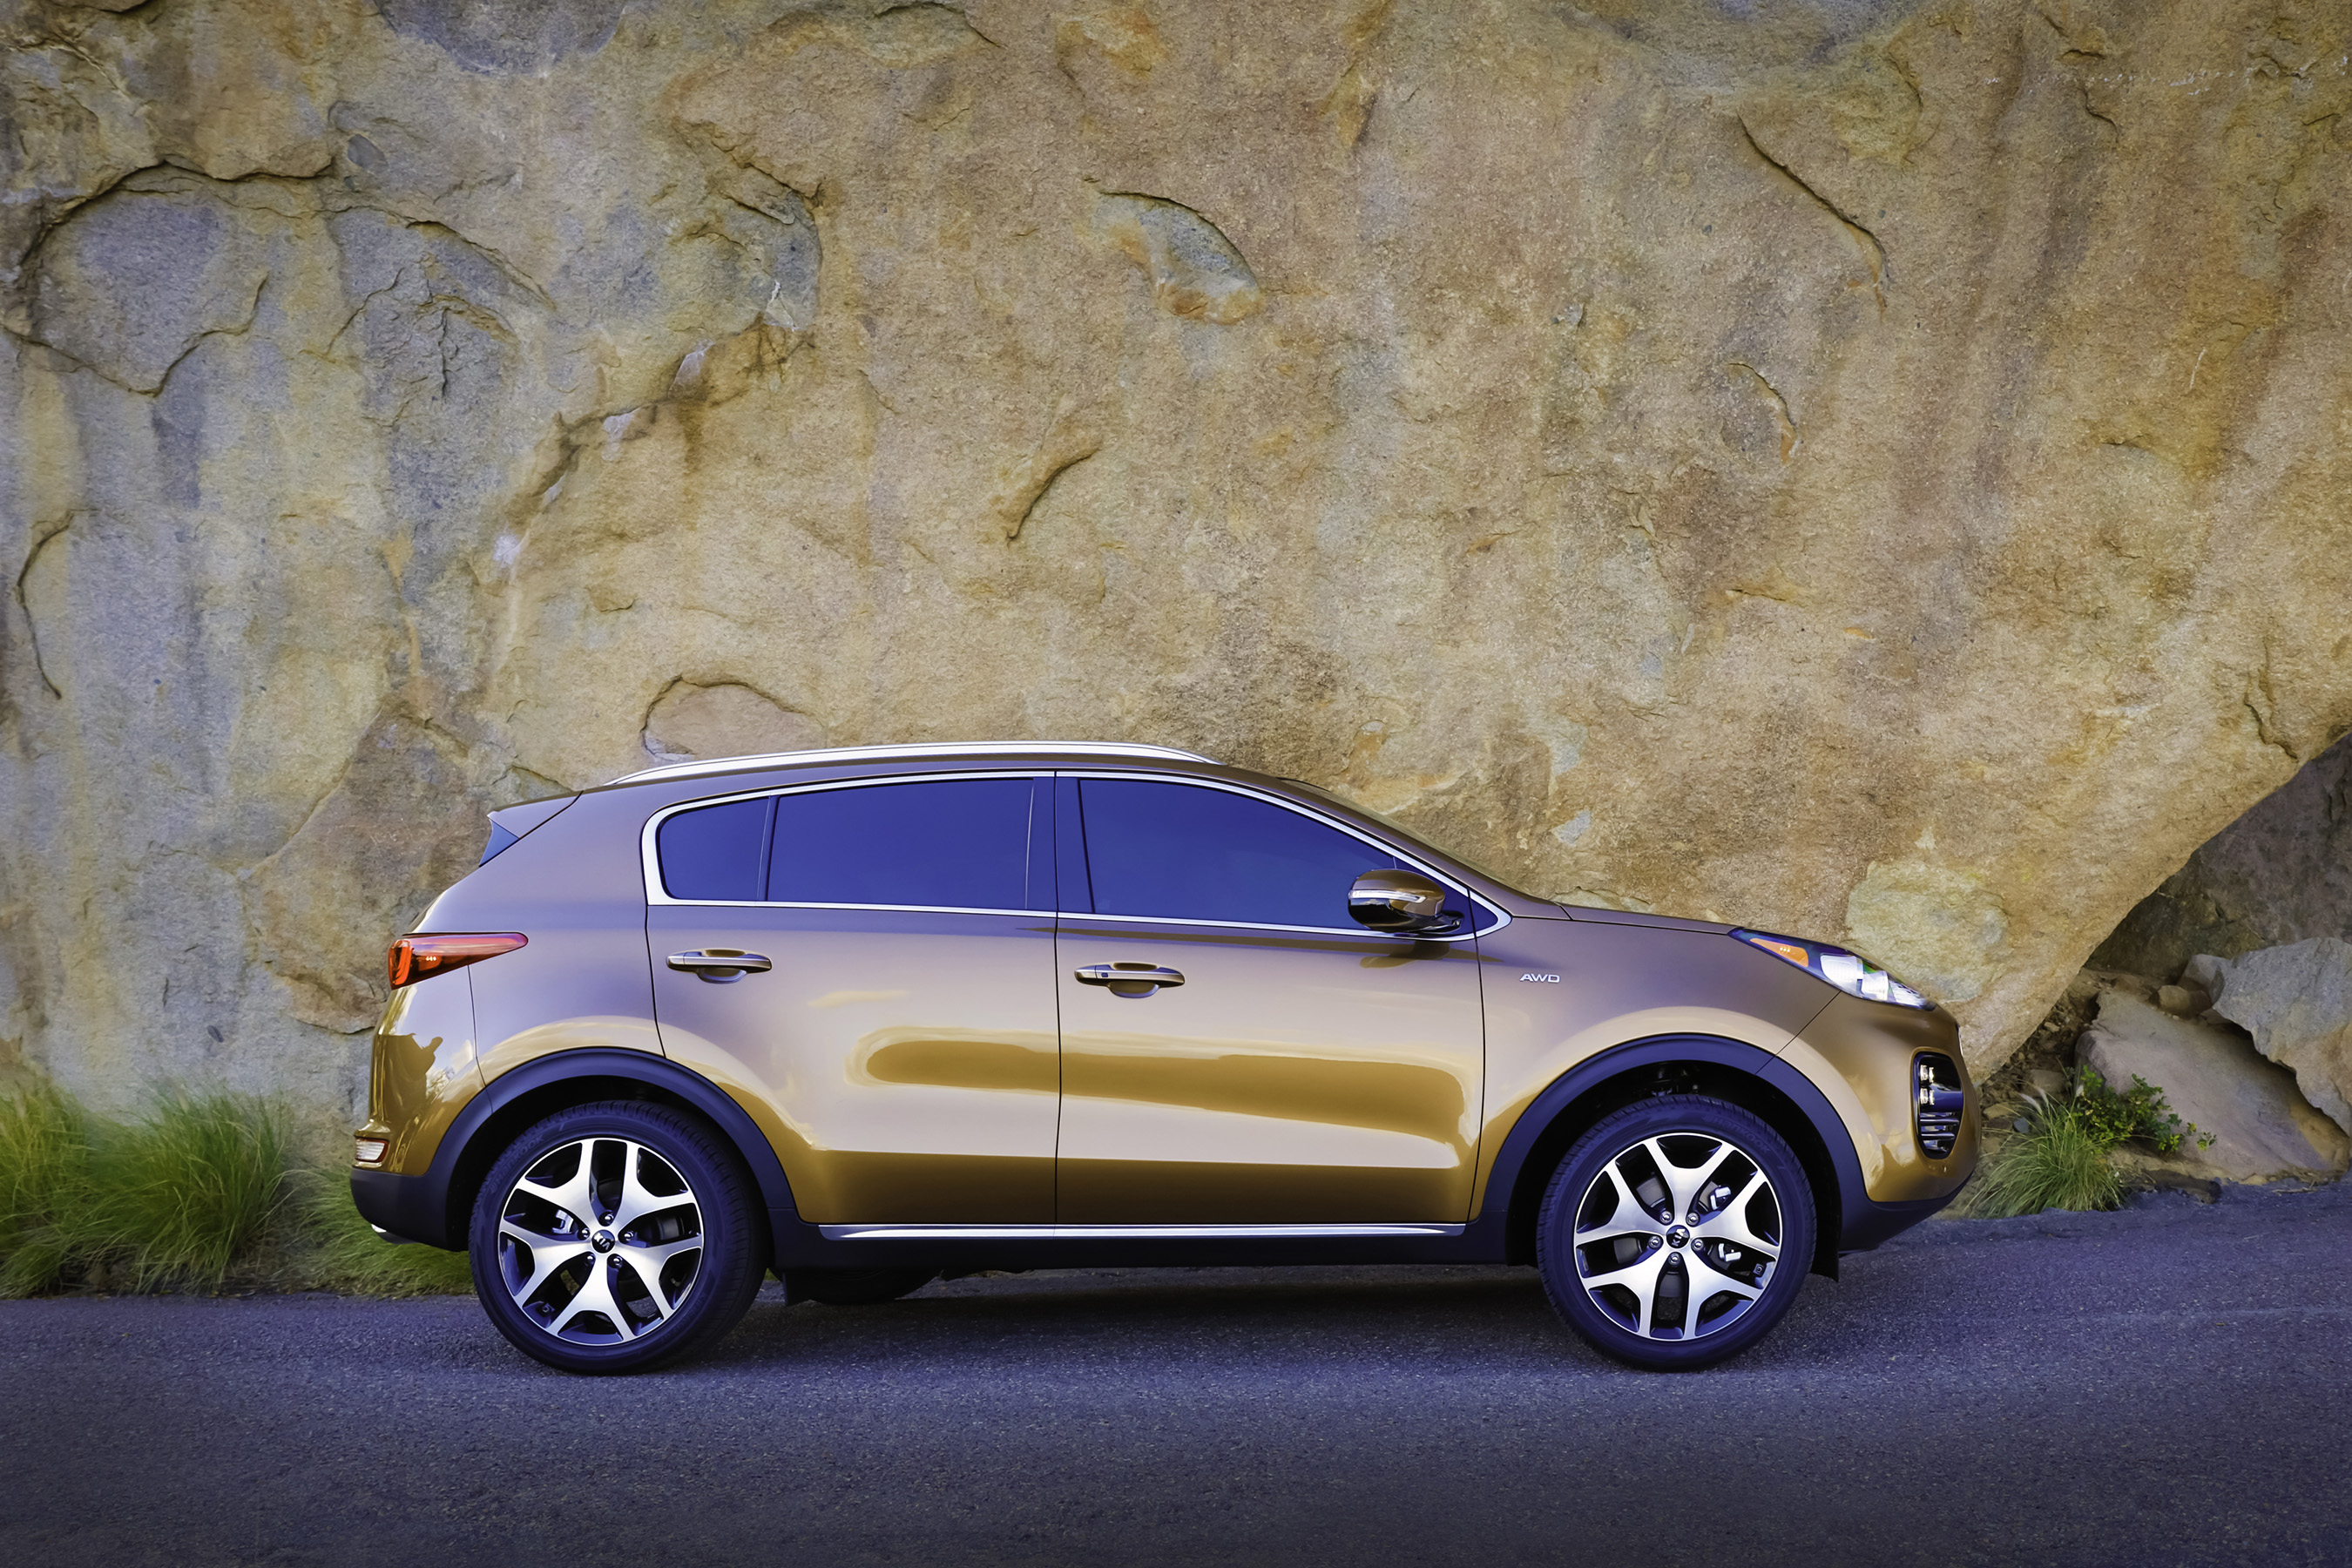 All-new 2017 Kia Sportage wraps stunning contemporary design around a structure that is both stiffer and more spacious.